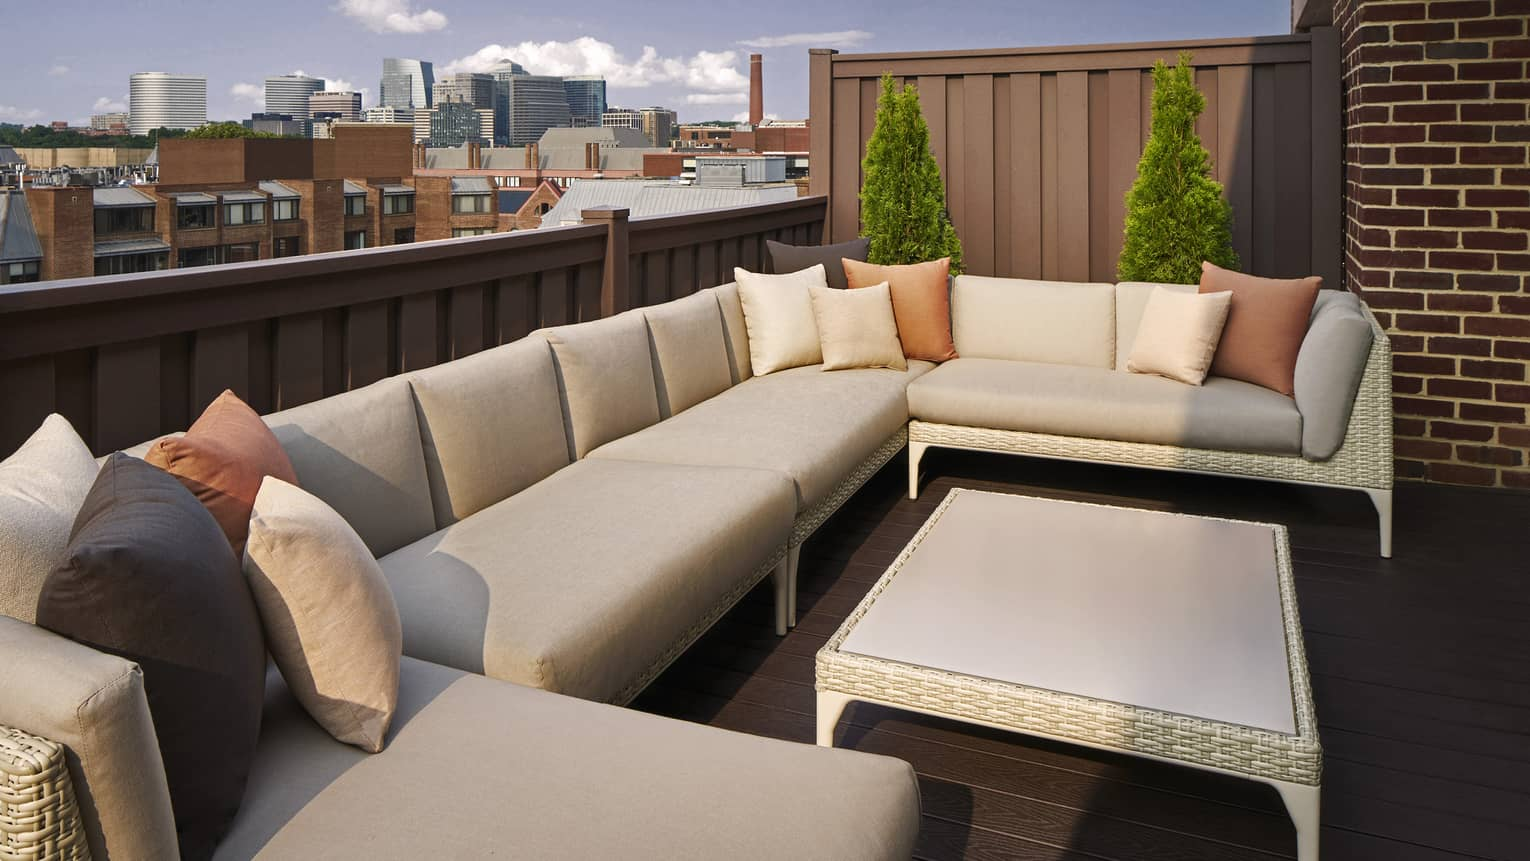 Expansive terrace with lounge seating